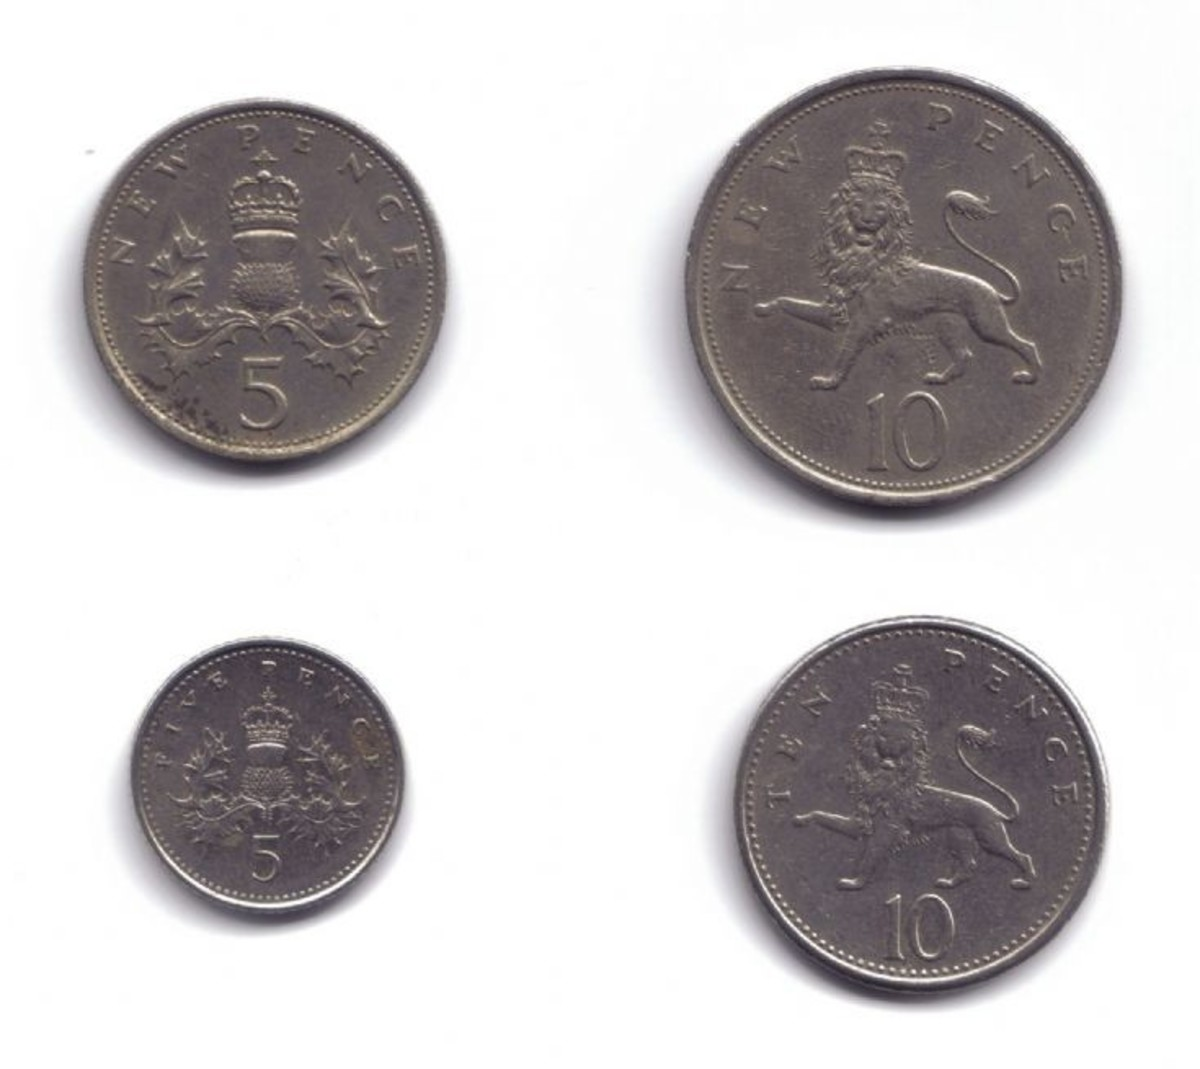 British Currency Uk Coins Metals And Values